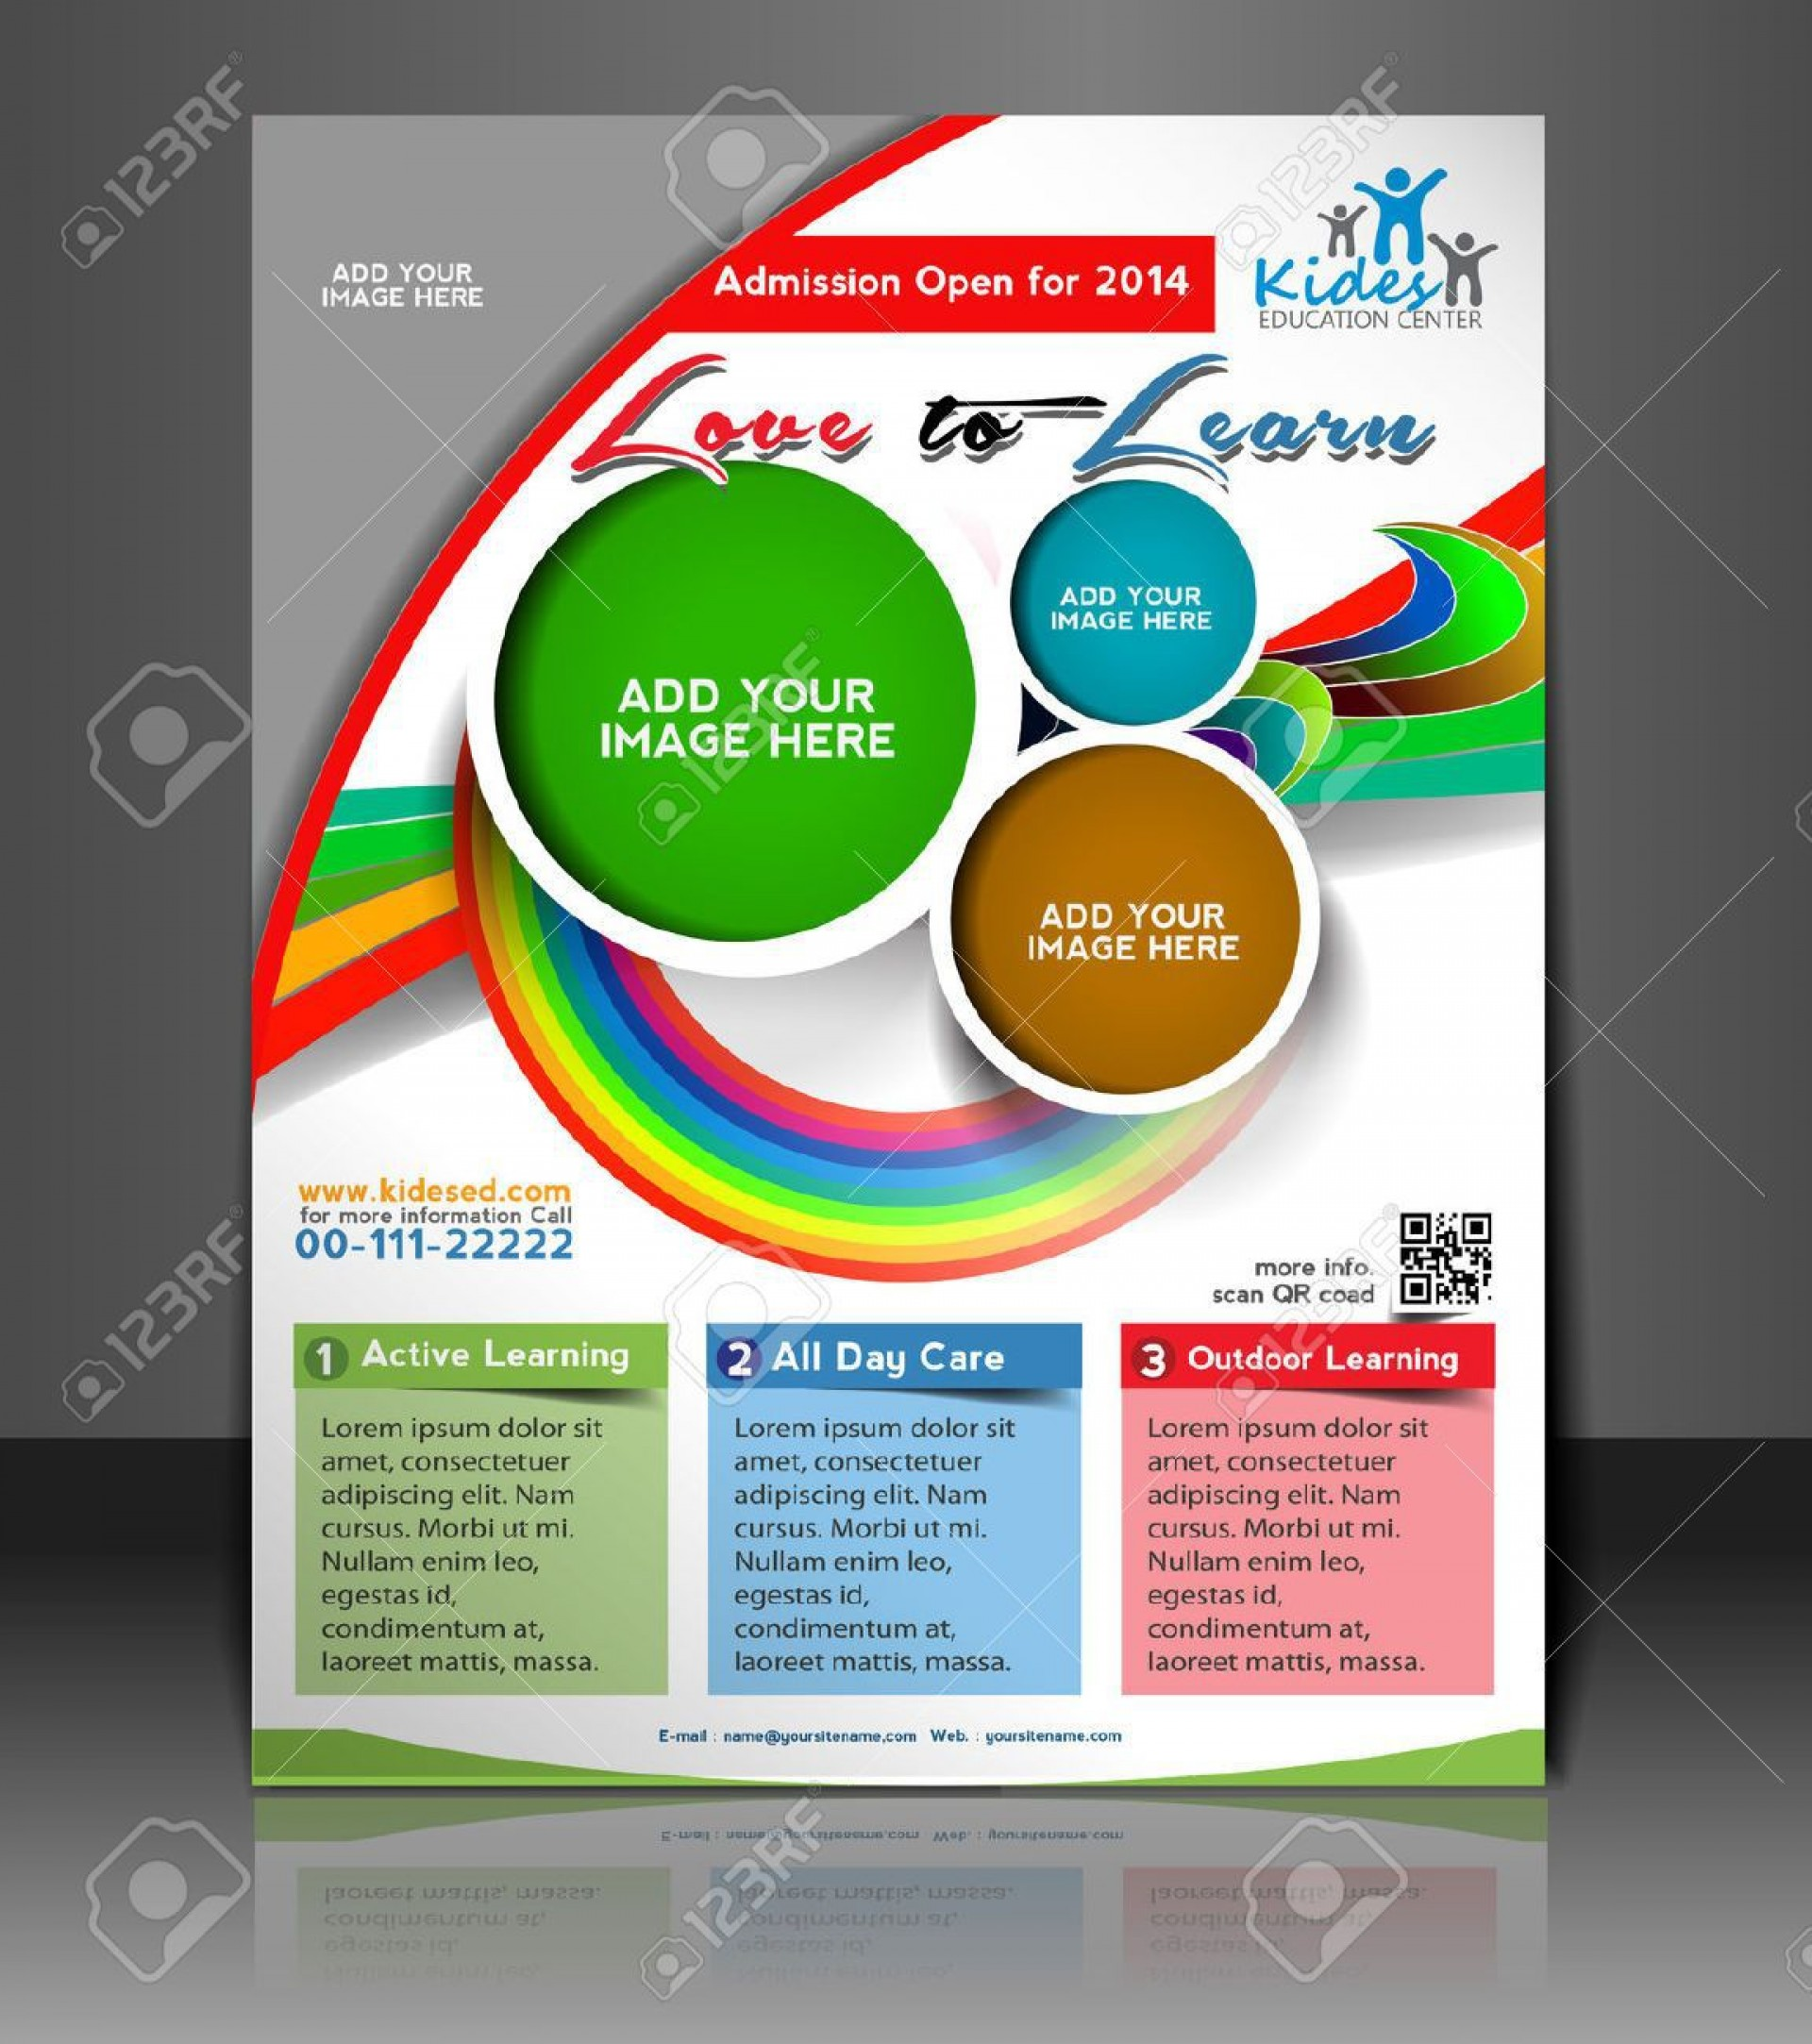 003 Amazing Free School Event Flyer Template Inspiration  Templates1920